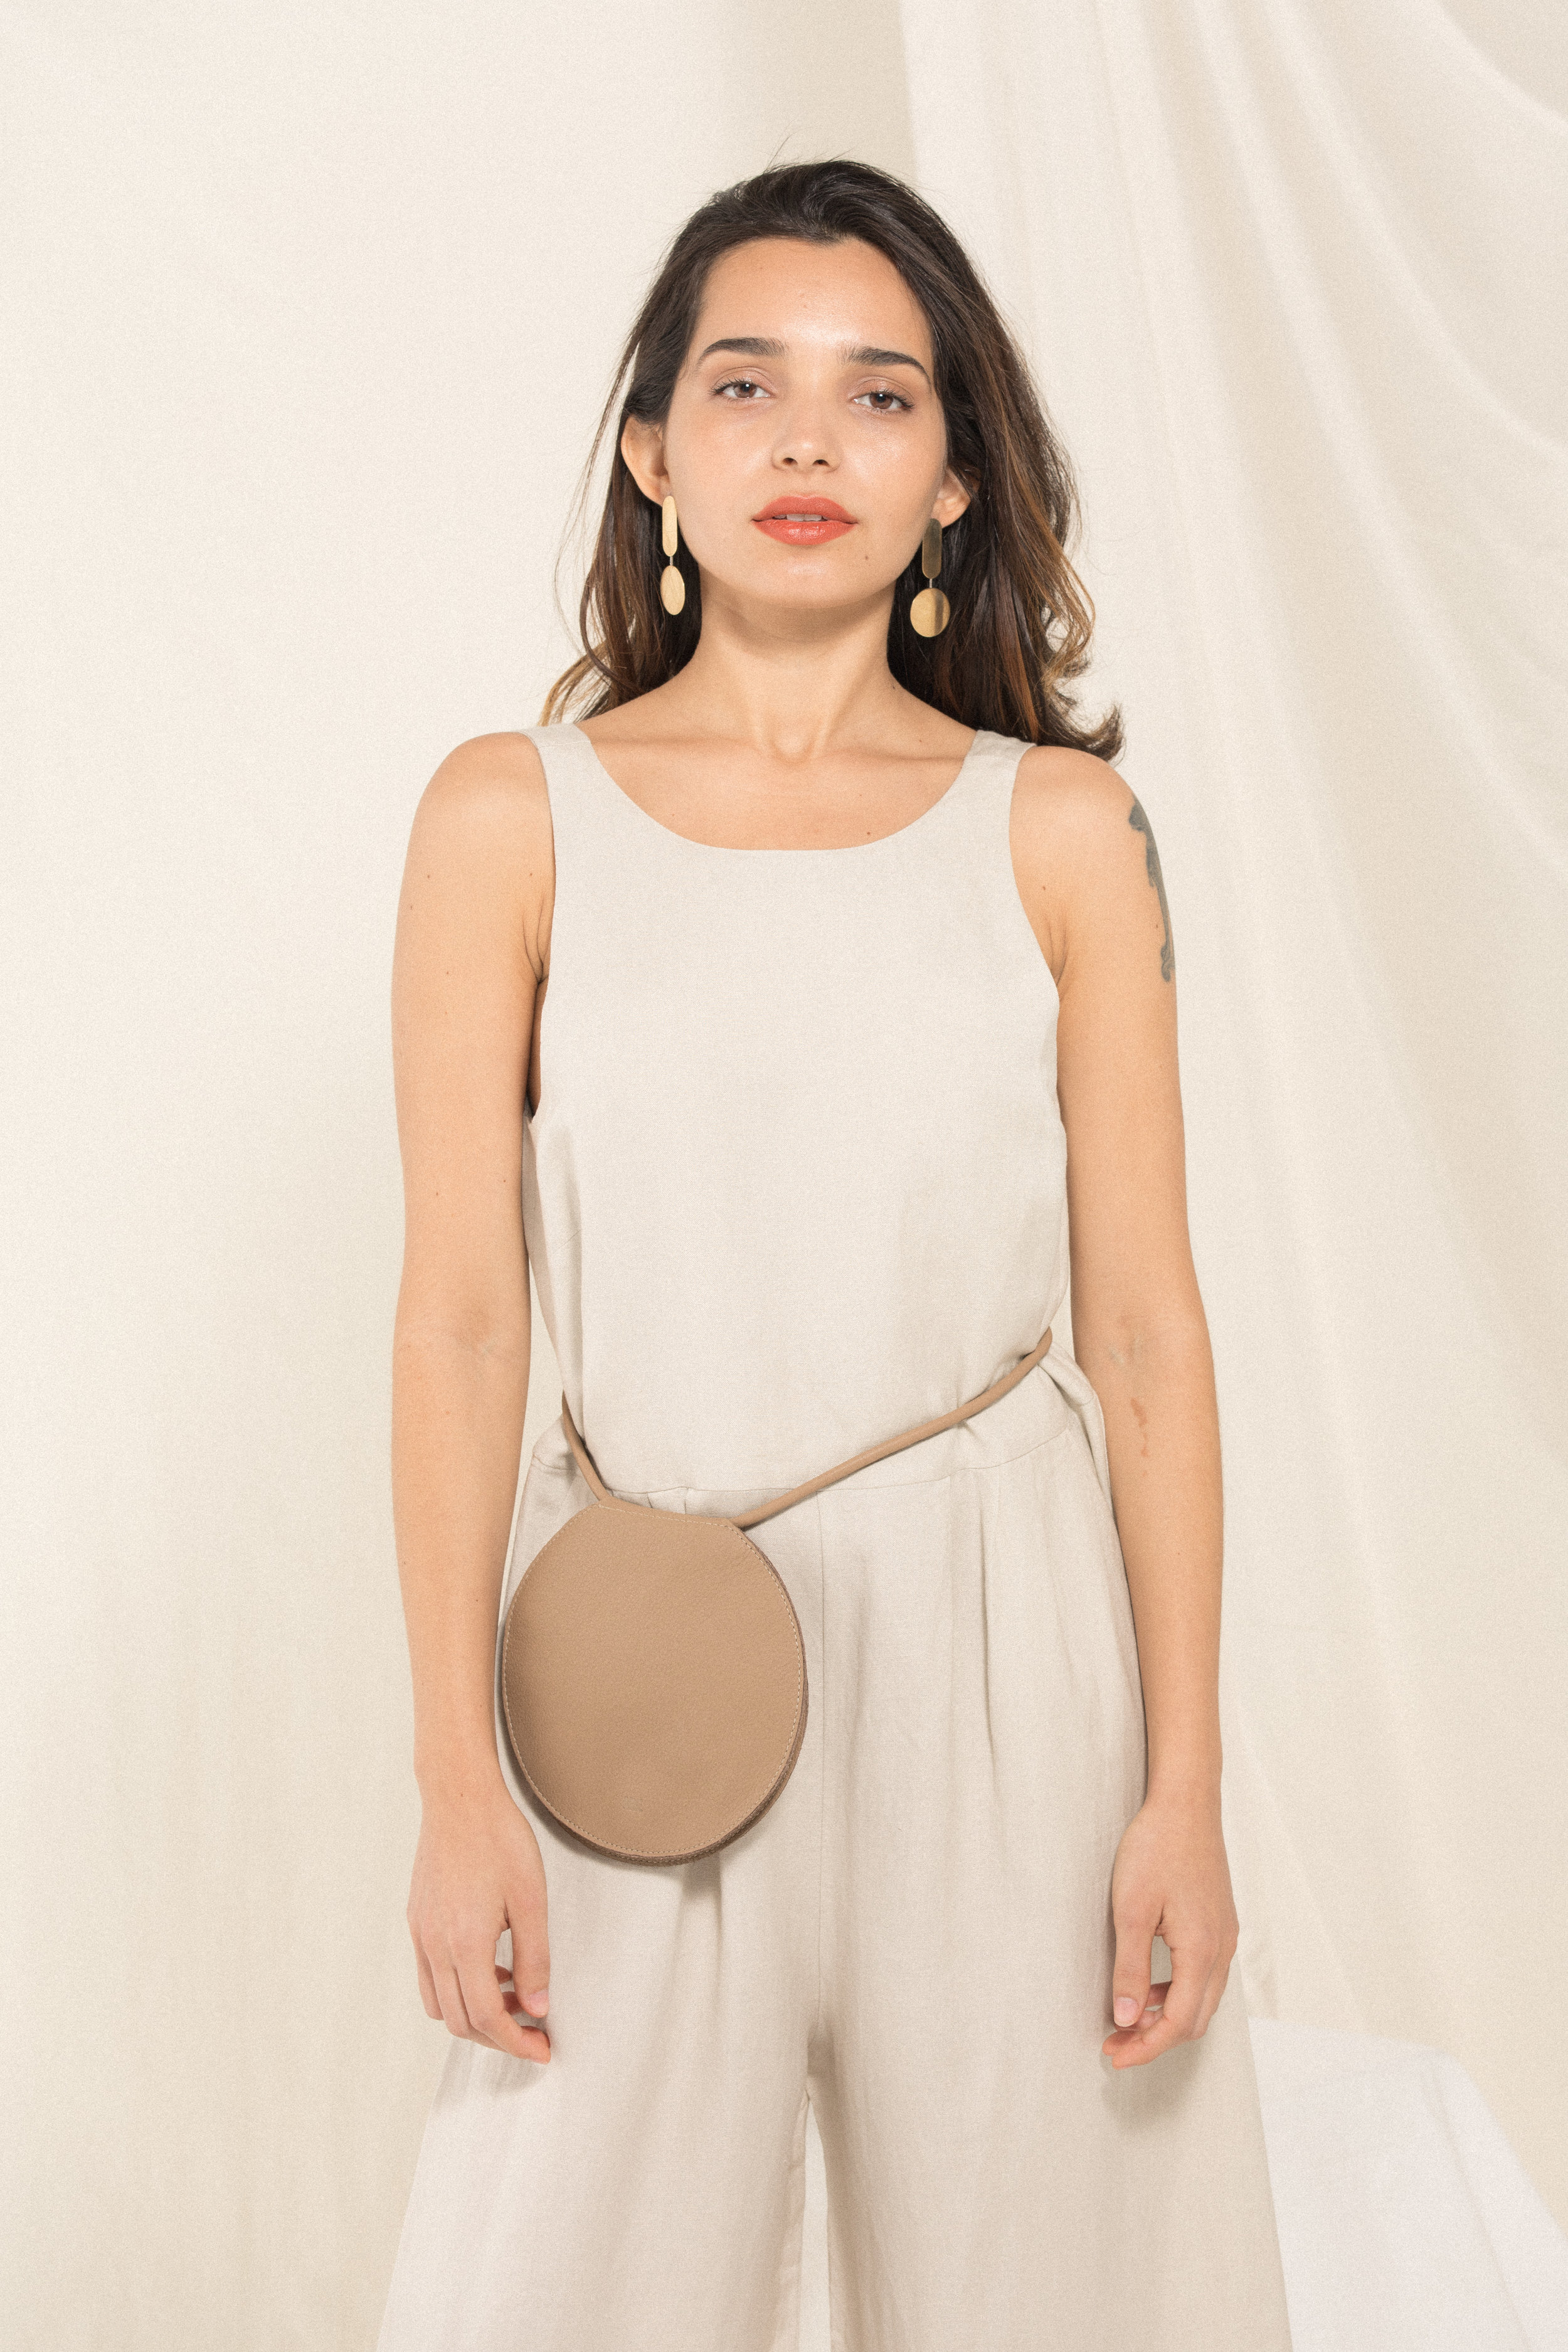 Now Earrings / Disc Bag -Dust / Crop Pantsuit - Khaki